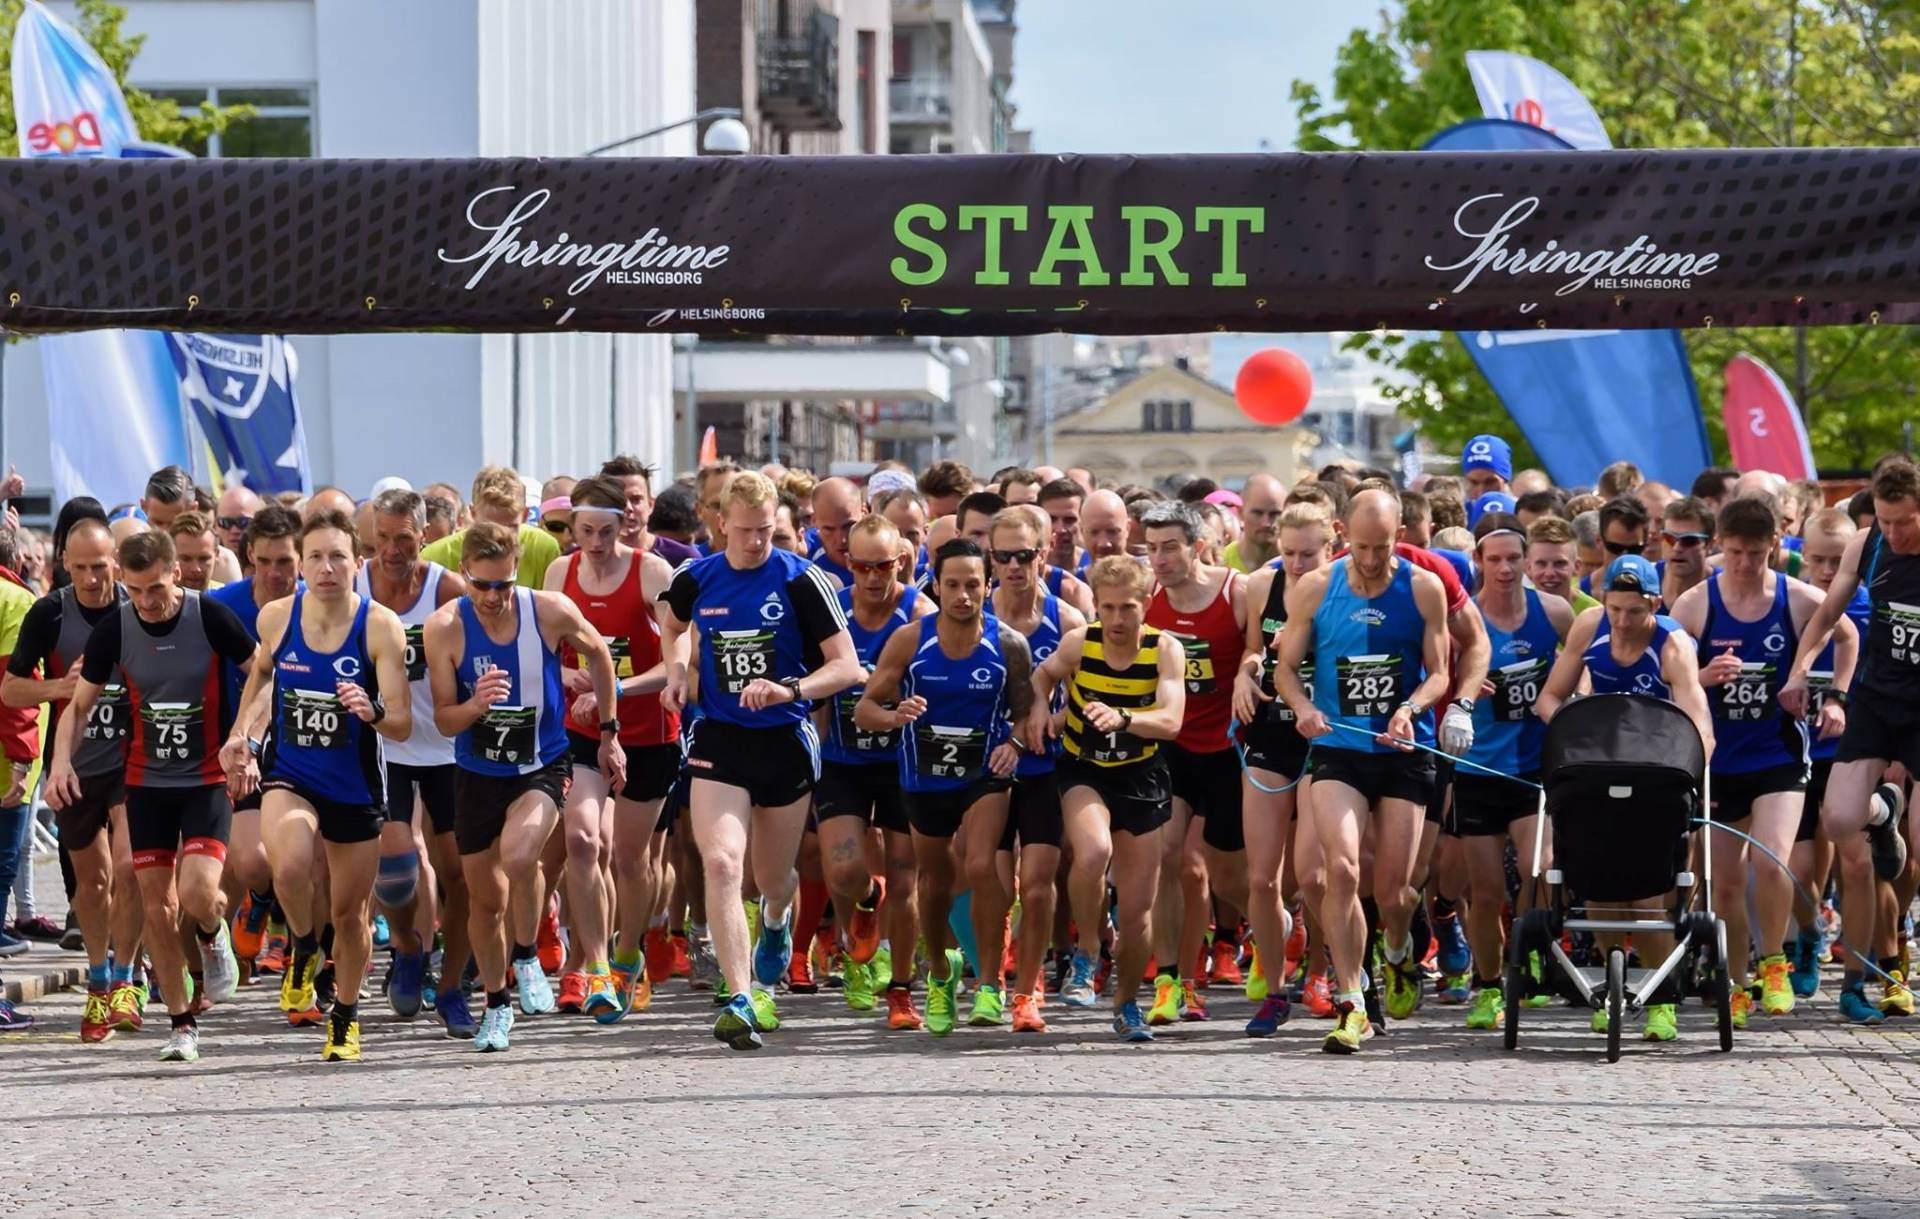 Andy in Helsingborg 10k – Jack wins at Malham – Inter-Counties Fell Championships – Chester Half-Marathon